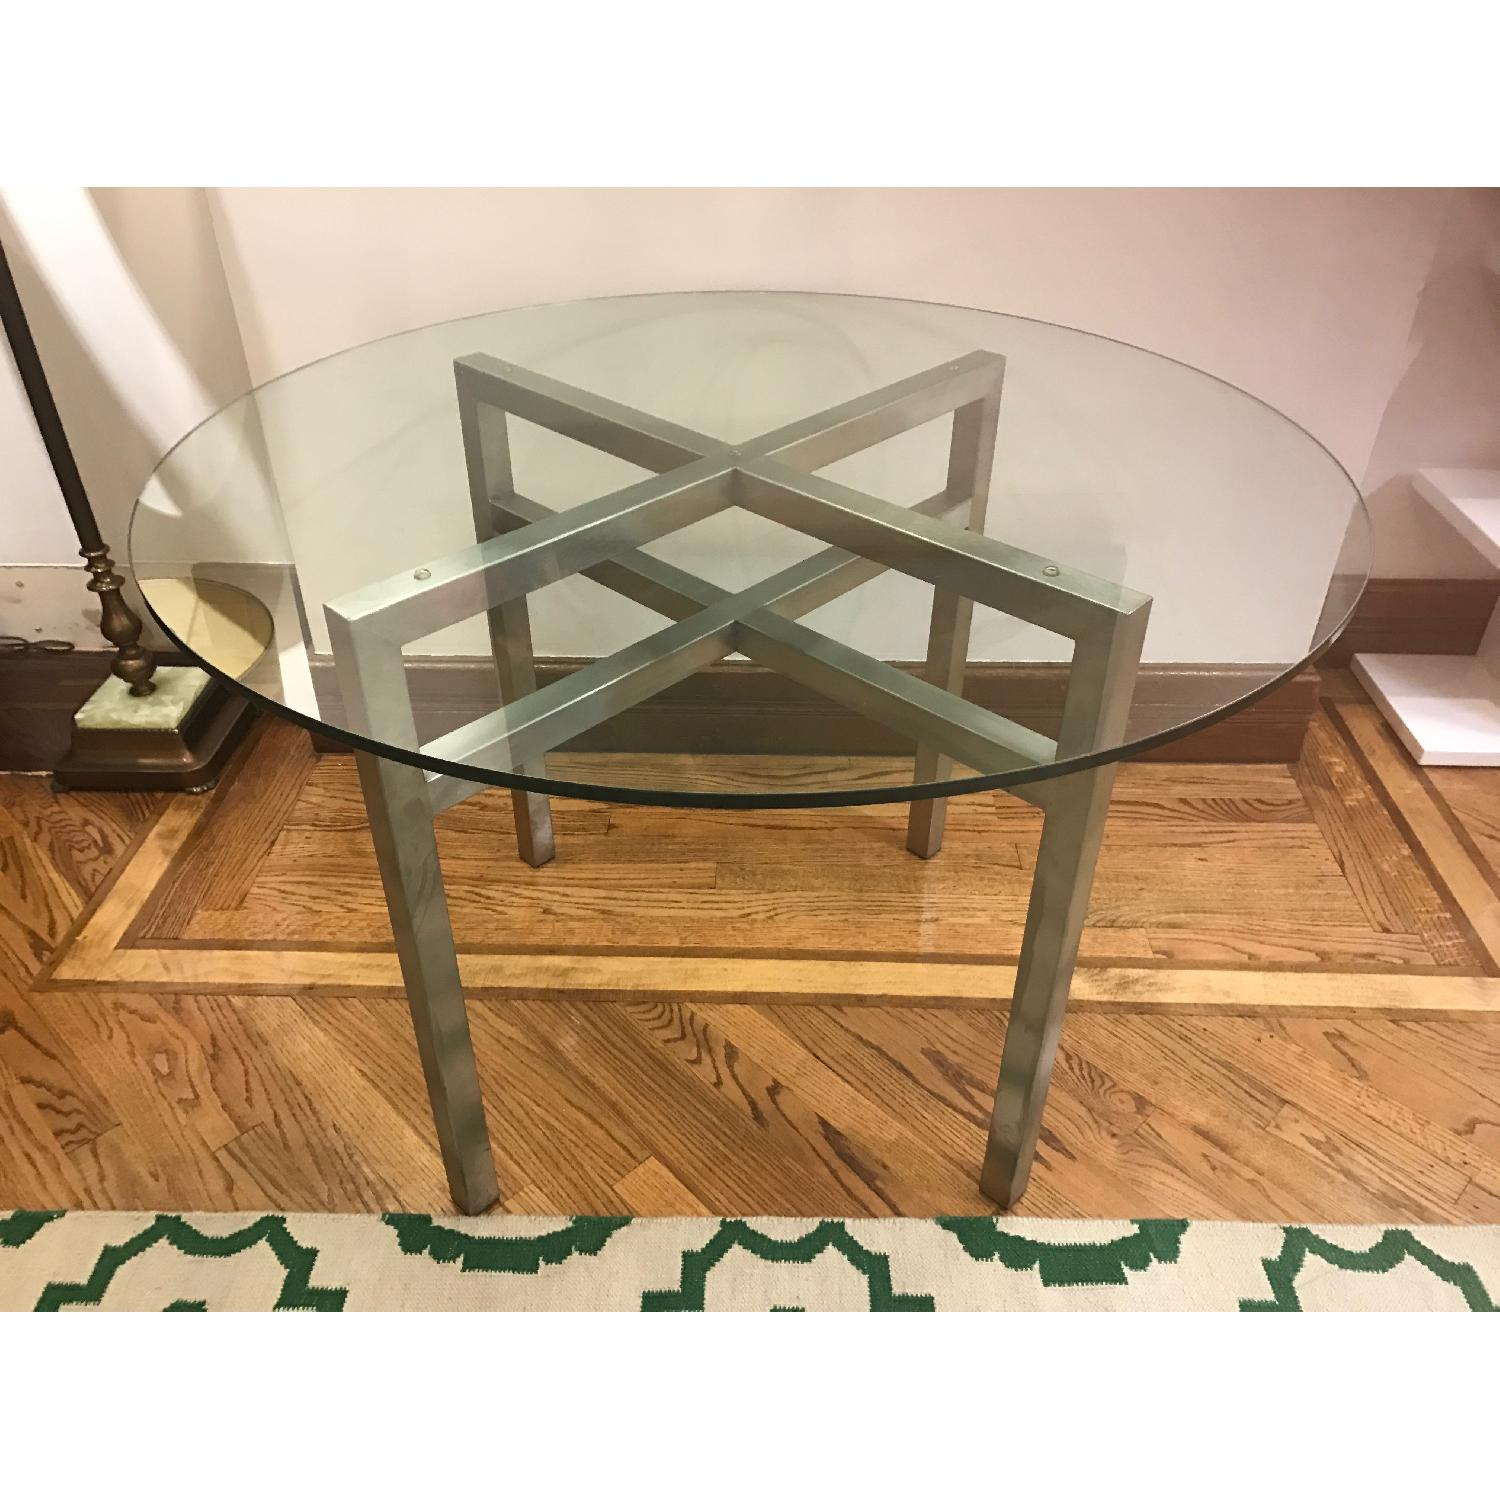 Room & Board Benson Dining Table in Stainless Steel & Glass - image-1